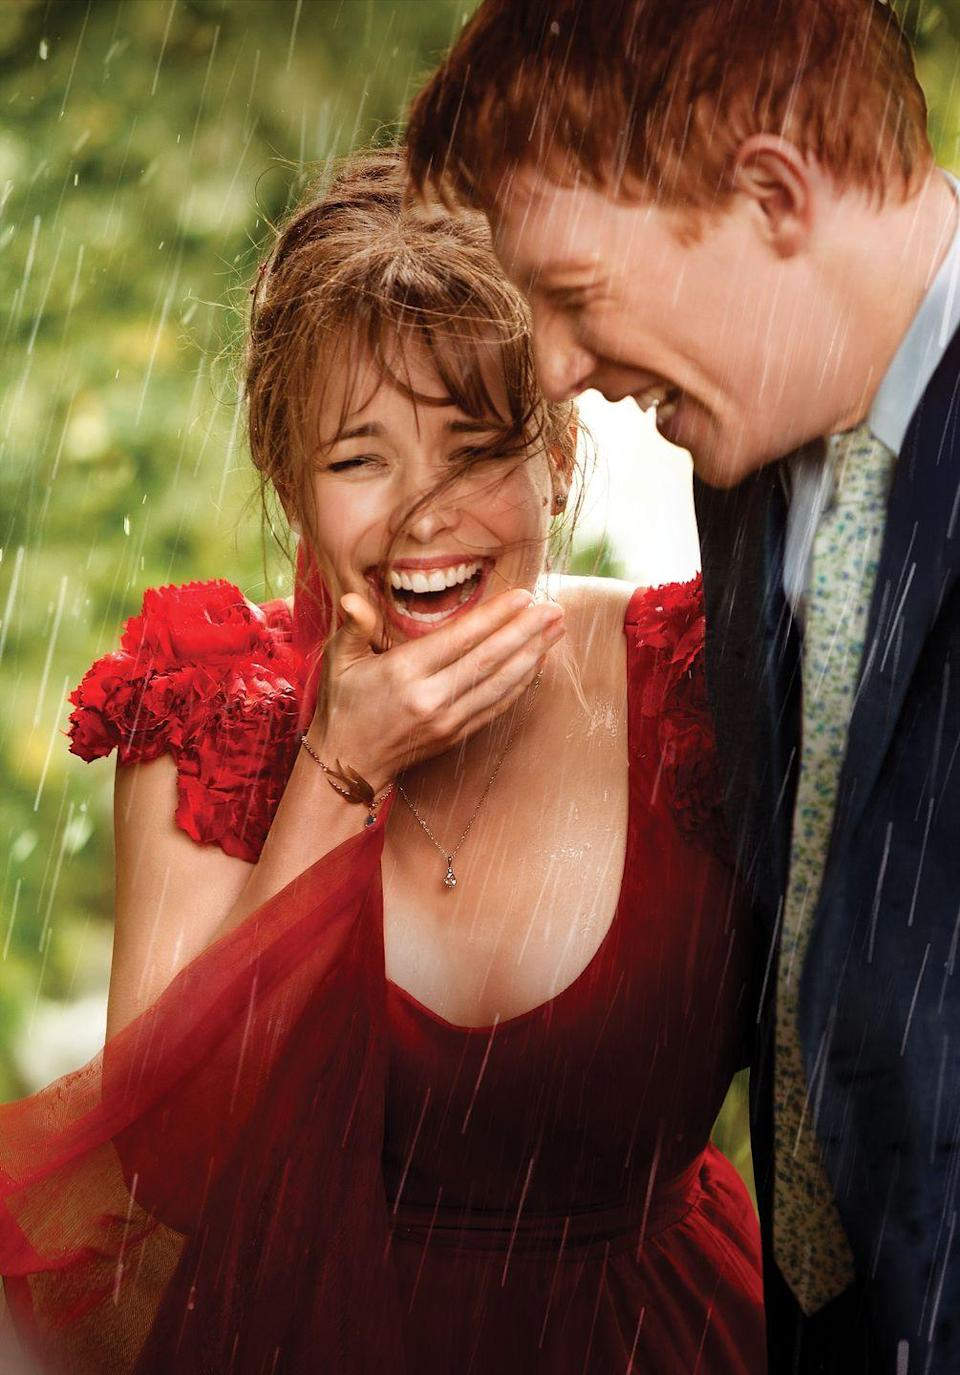 "<p>If you're bored with formulaic tales of romance, look to this time-hopping British delight starring Rachel McAdams and Domhnall Gleeson, from <em>Love Actually</em> director Richard Curtis. Gleeson stars as a bloke who learns his armoire has time-machine powers, so he spends the film jumping back and forth through the years trying to perfect his life. It all makes for a profound and truly romantic watch. <a class=""link rapid-noclick-resp"" href=""https://www.amazon.com/About-Time-Domnhall-Gleeson/dp/B00HYI8A08?tag=syn-yahoo-20&ascsubtag=%5Bartid%7C10056.g.6498%5Bsrc%7Cyahoo-us"" rel=""nofollow noopener"" target=""_blank"" data-ylk=""slk:Watch Now"">Watch Now </a> </p>"